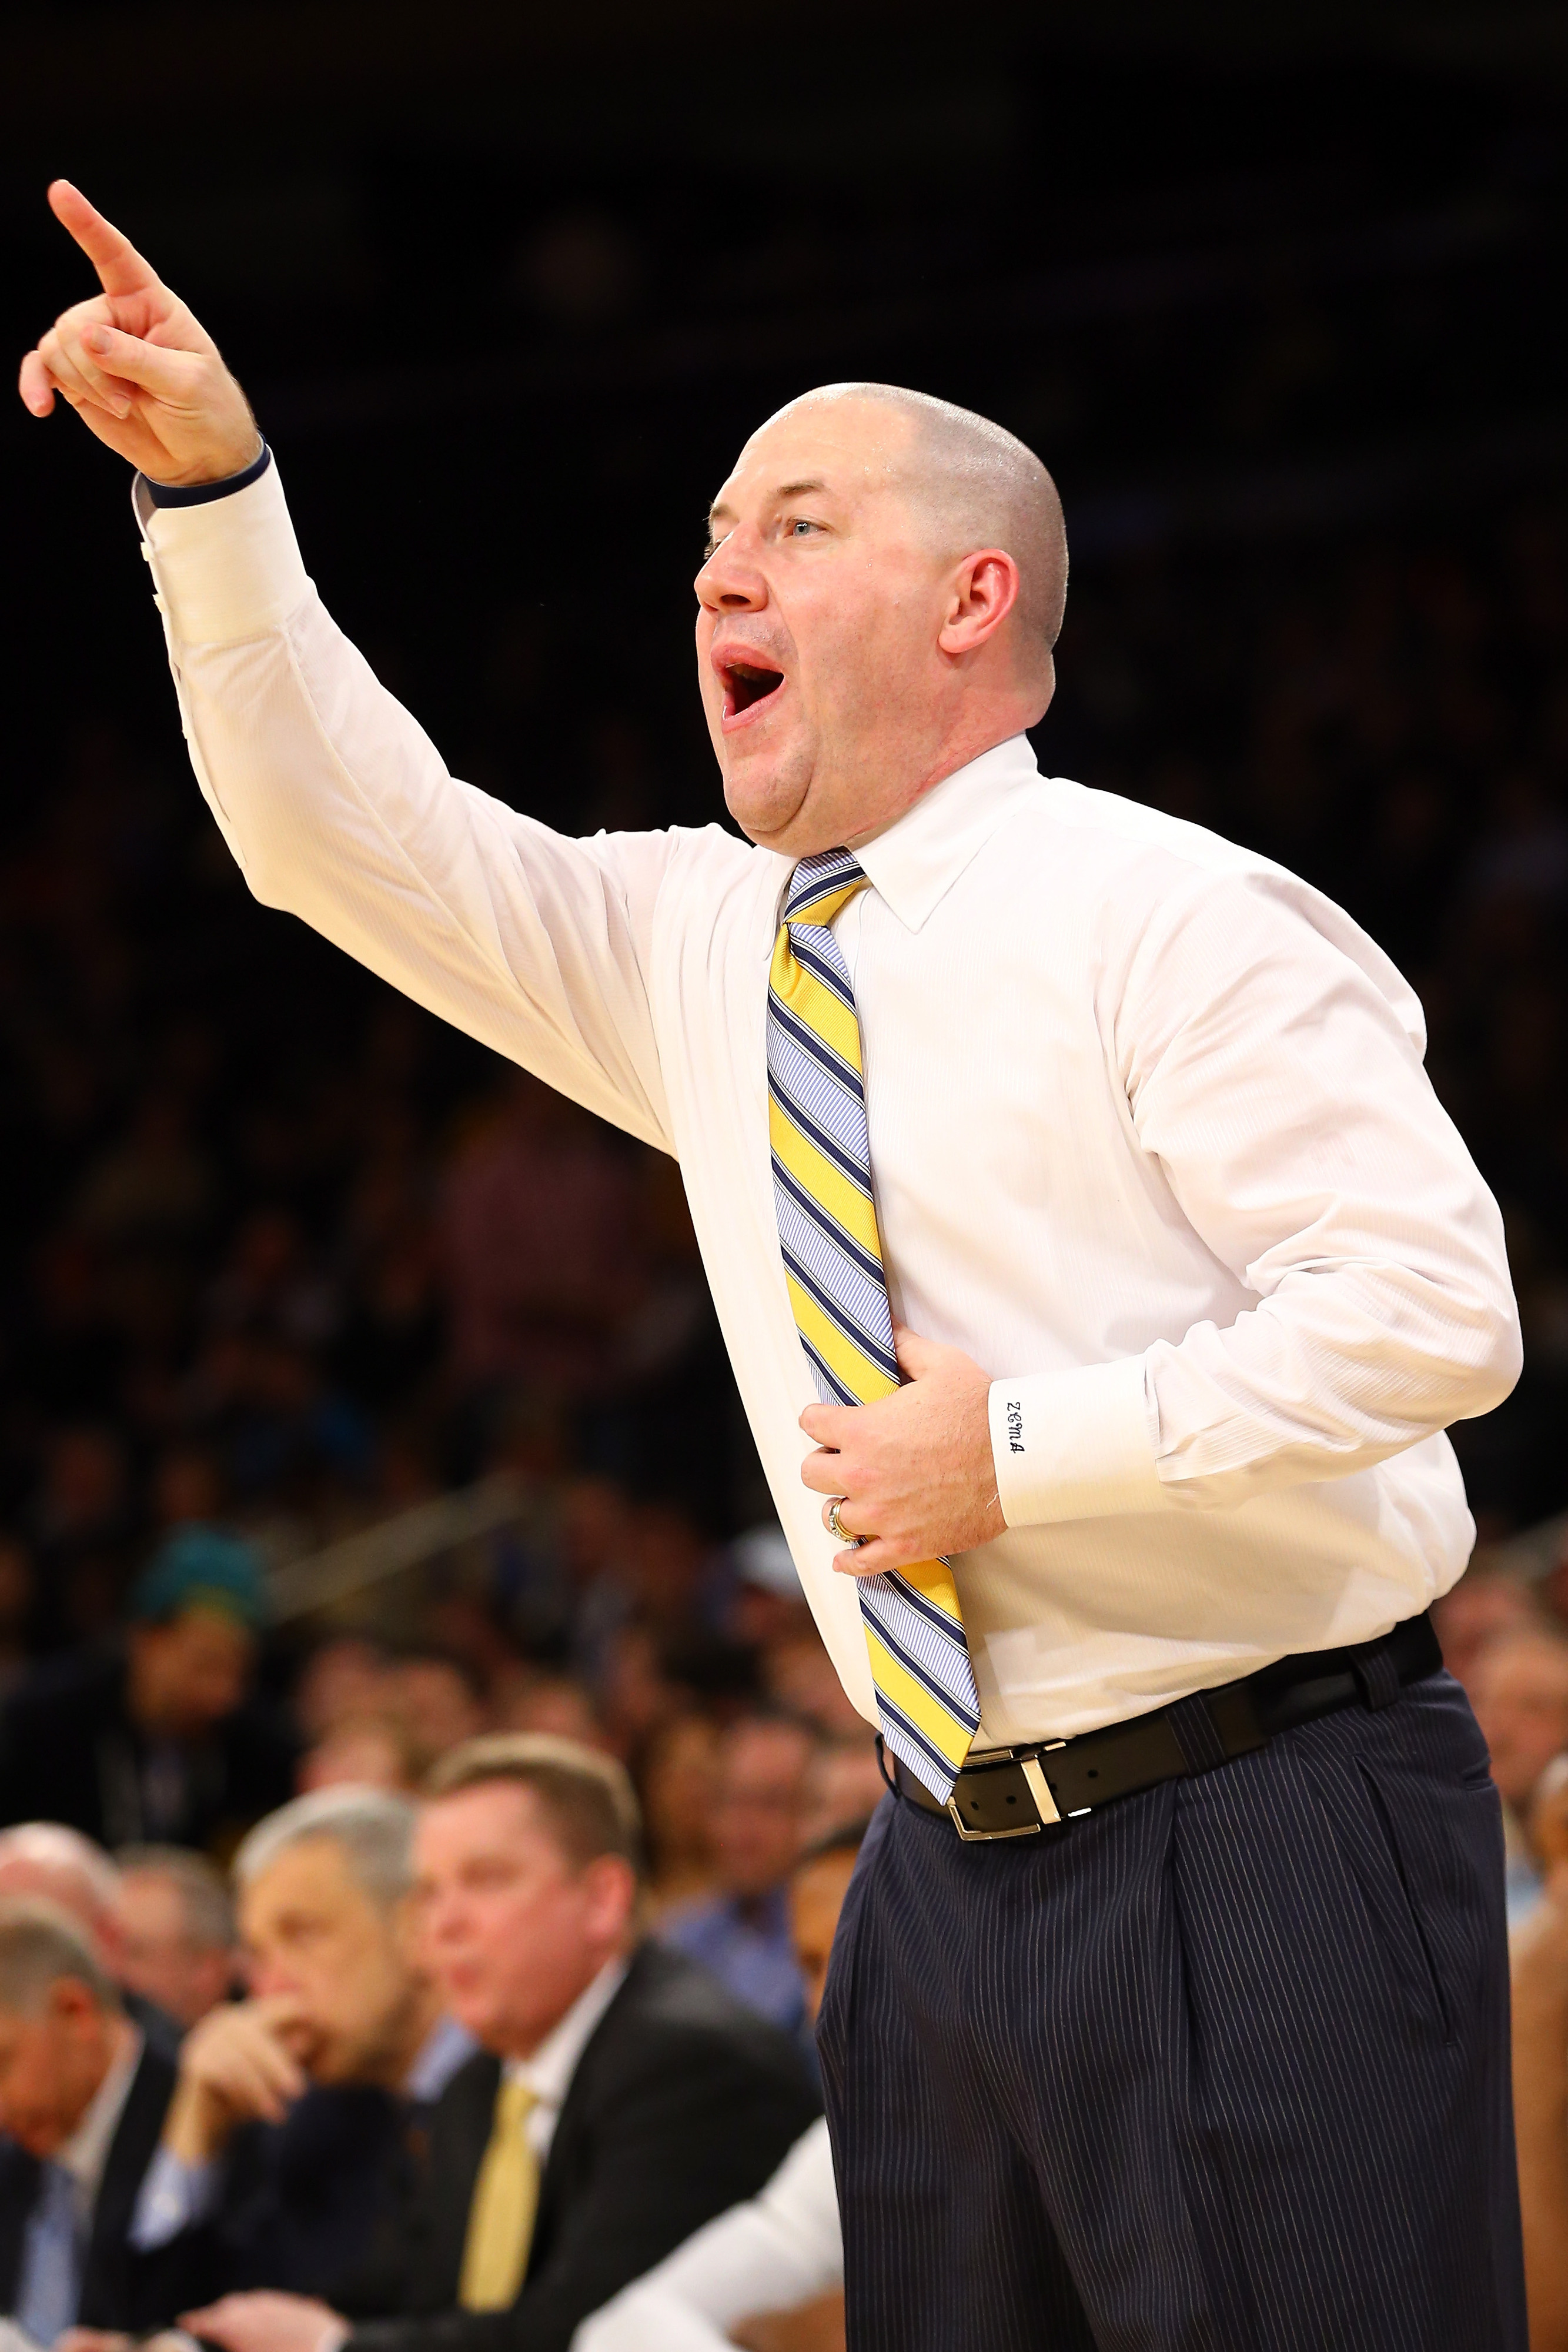 Yes, Buzz, the 3 seed is in the top part of the bracket. Nicely done.